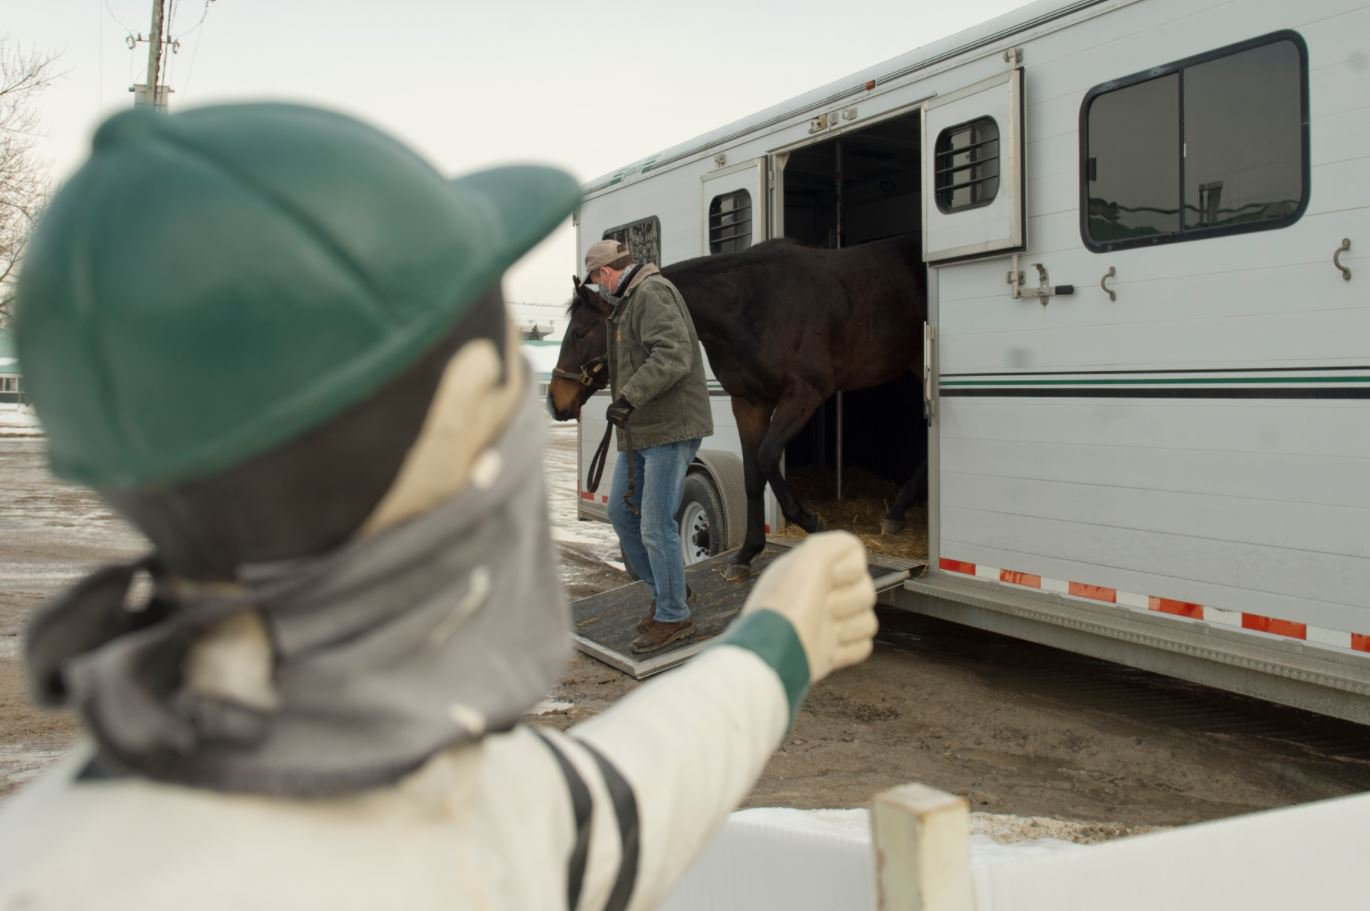 Welcome back! Lots of activity in the backstretch today as horses start shipping in - the countdown to the 2021 season starts now!